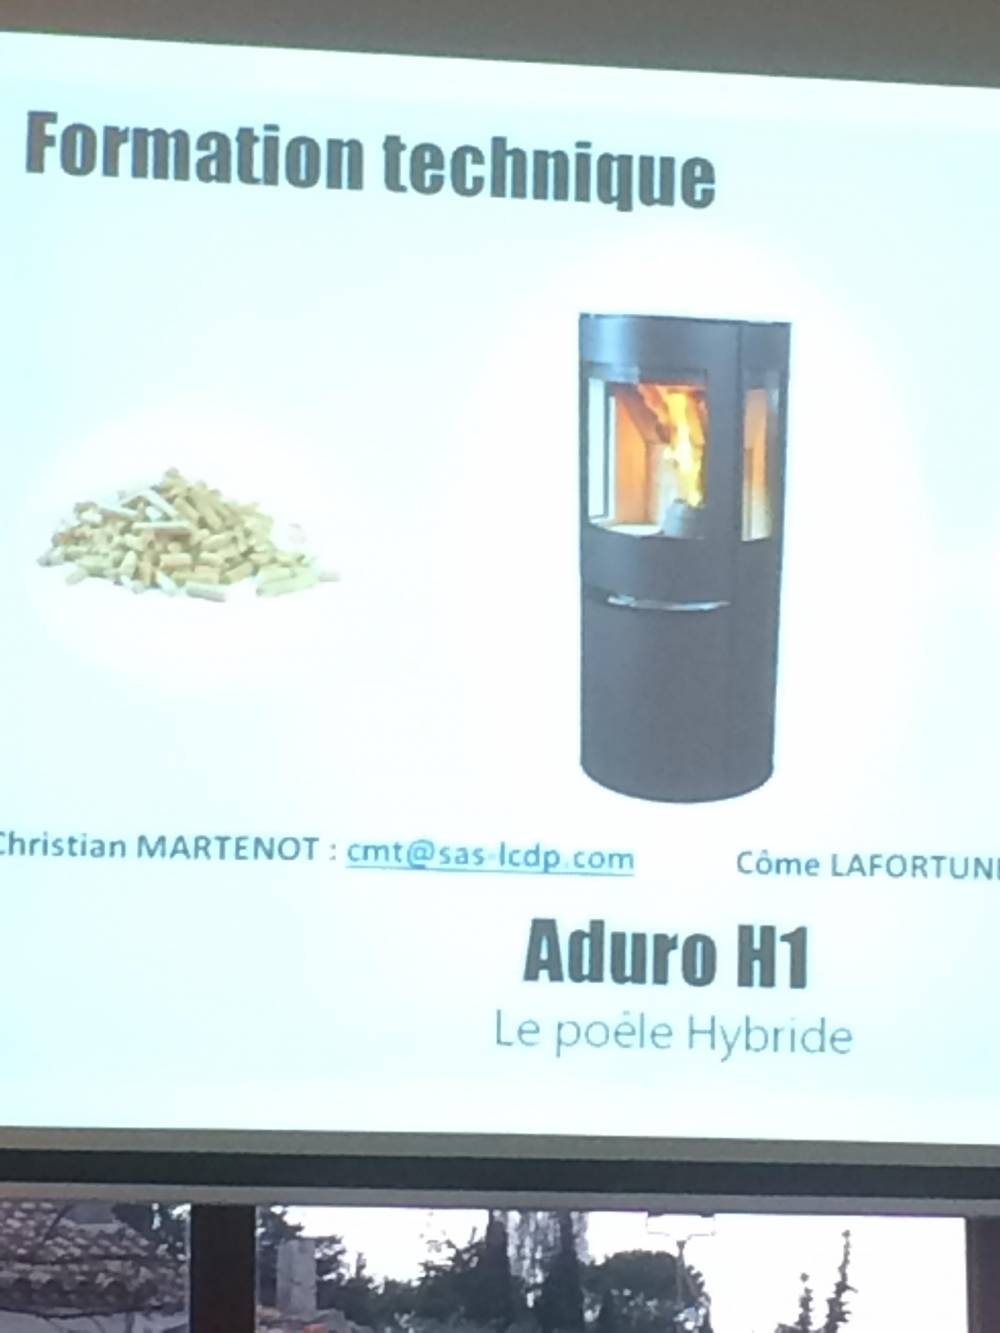 formation technique ADURO H1 hybride